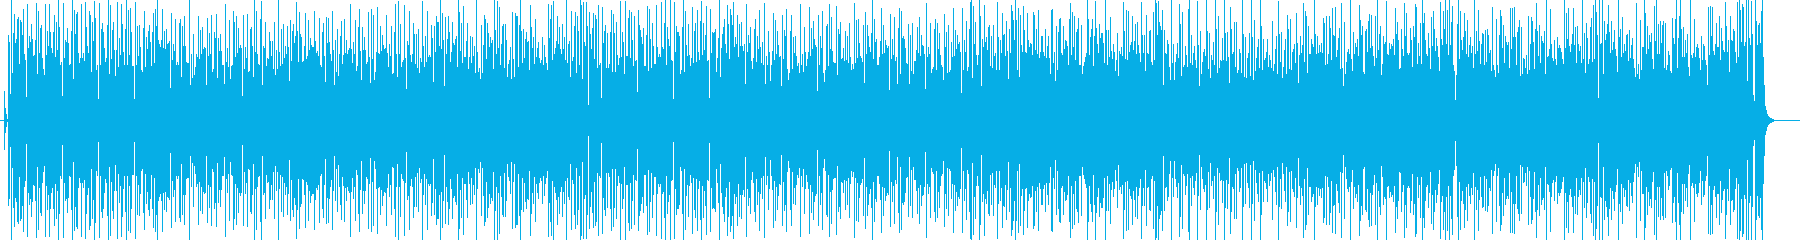 Hilarious synth songs such as percussion's reproduced waveform